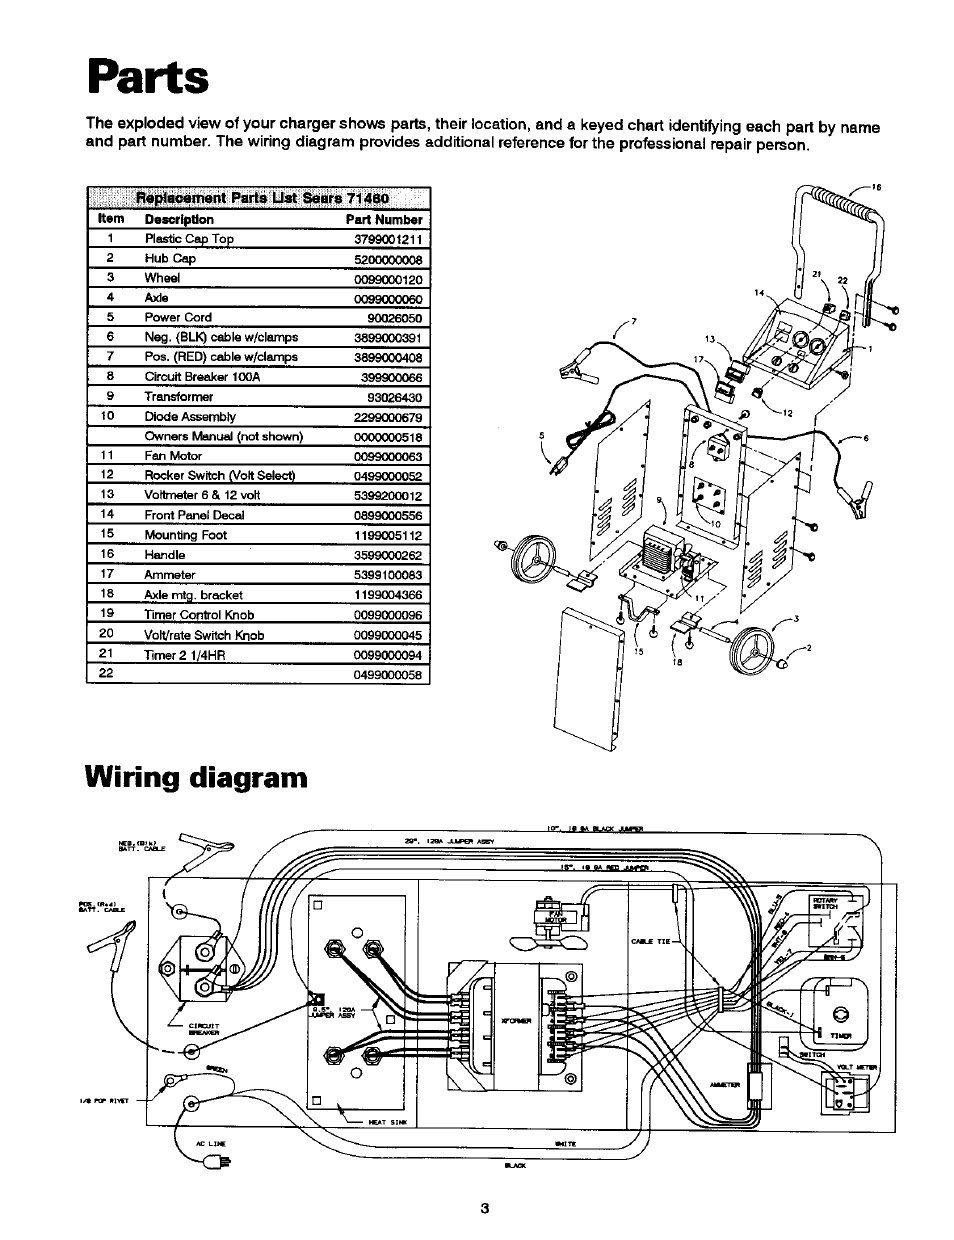 Parts     Wiring       diagram      Sears DieHard 20071460 User Manual   Page 4  15